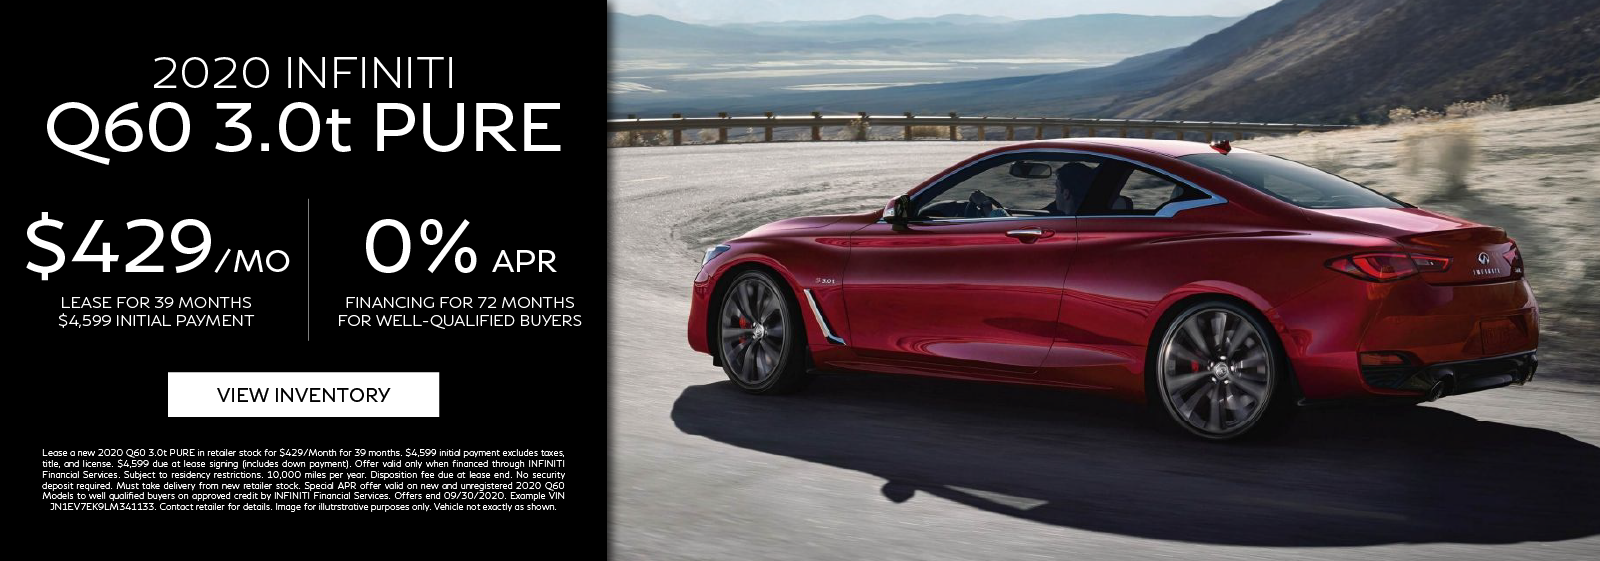 Lease a new 2020 Q60 3.0t PURE for $429 per month for 39 months. Click to view inventory.